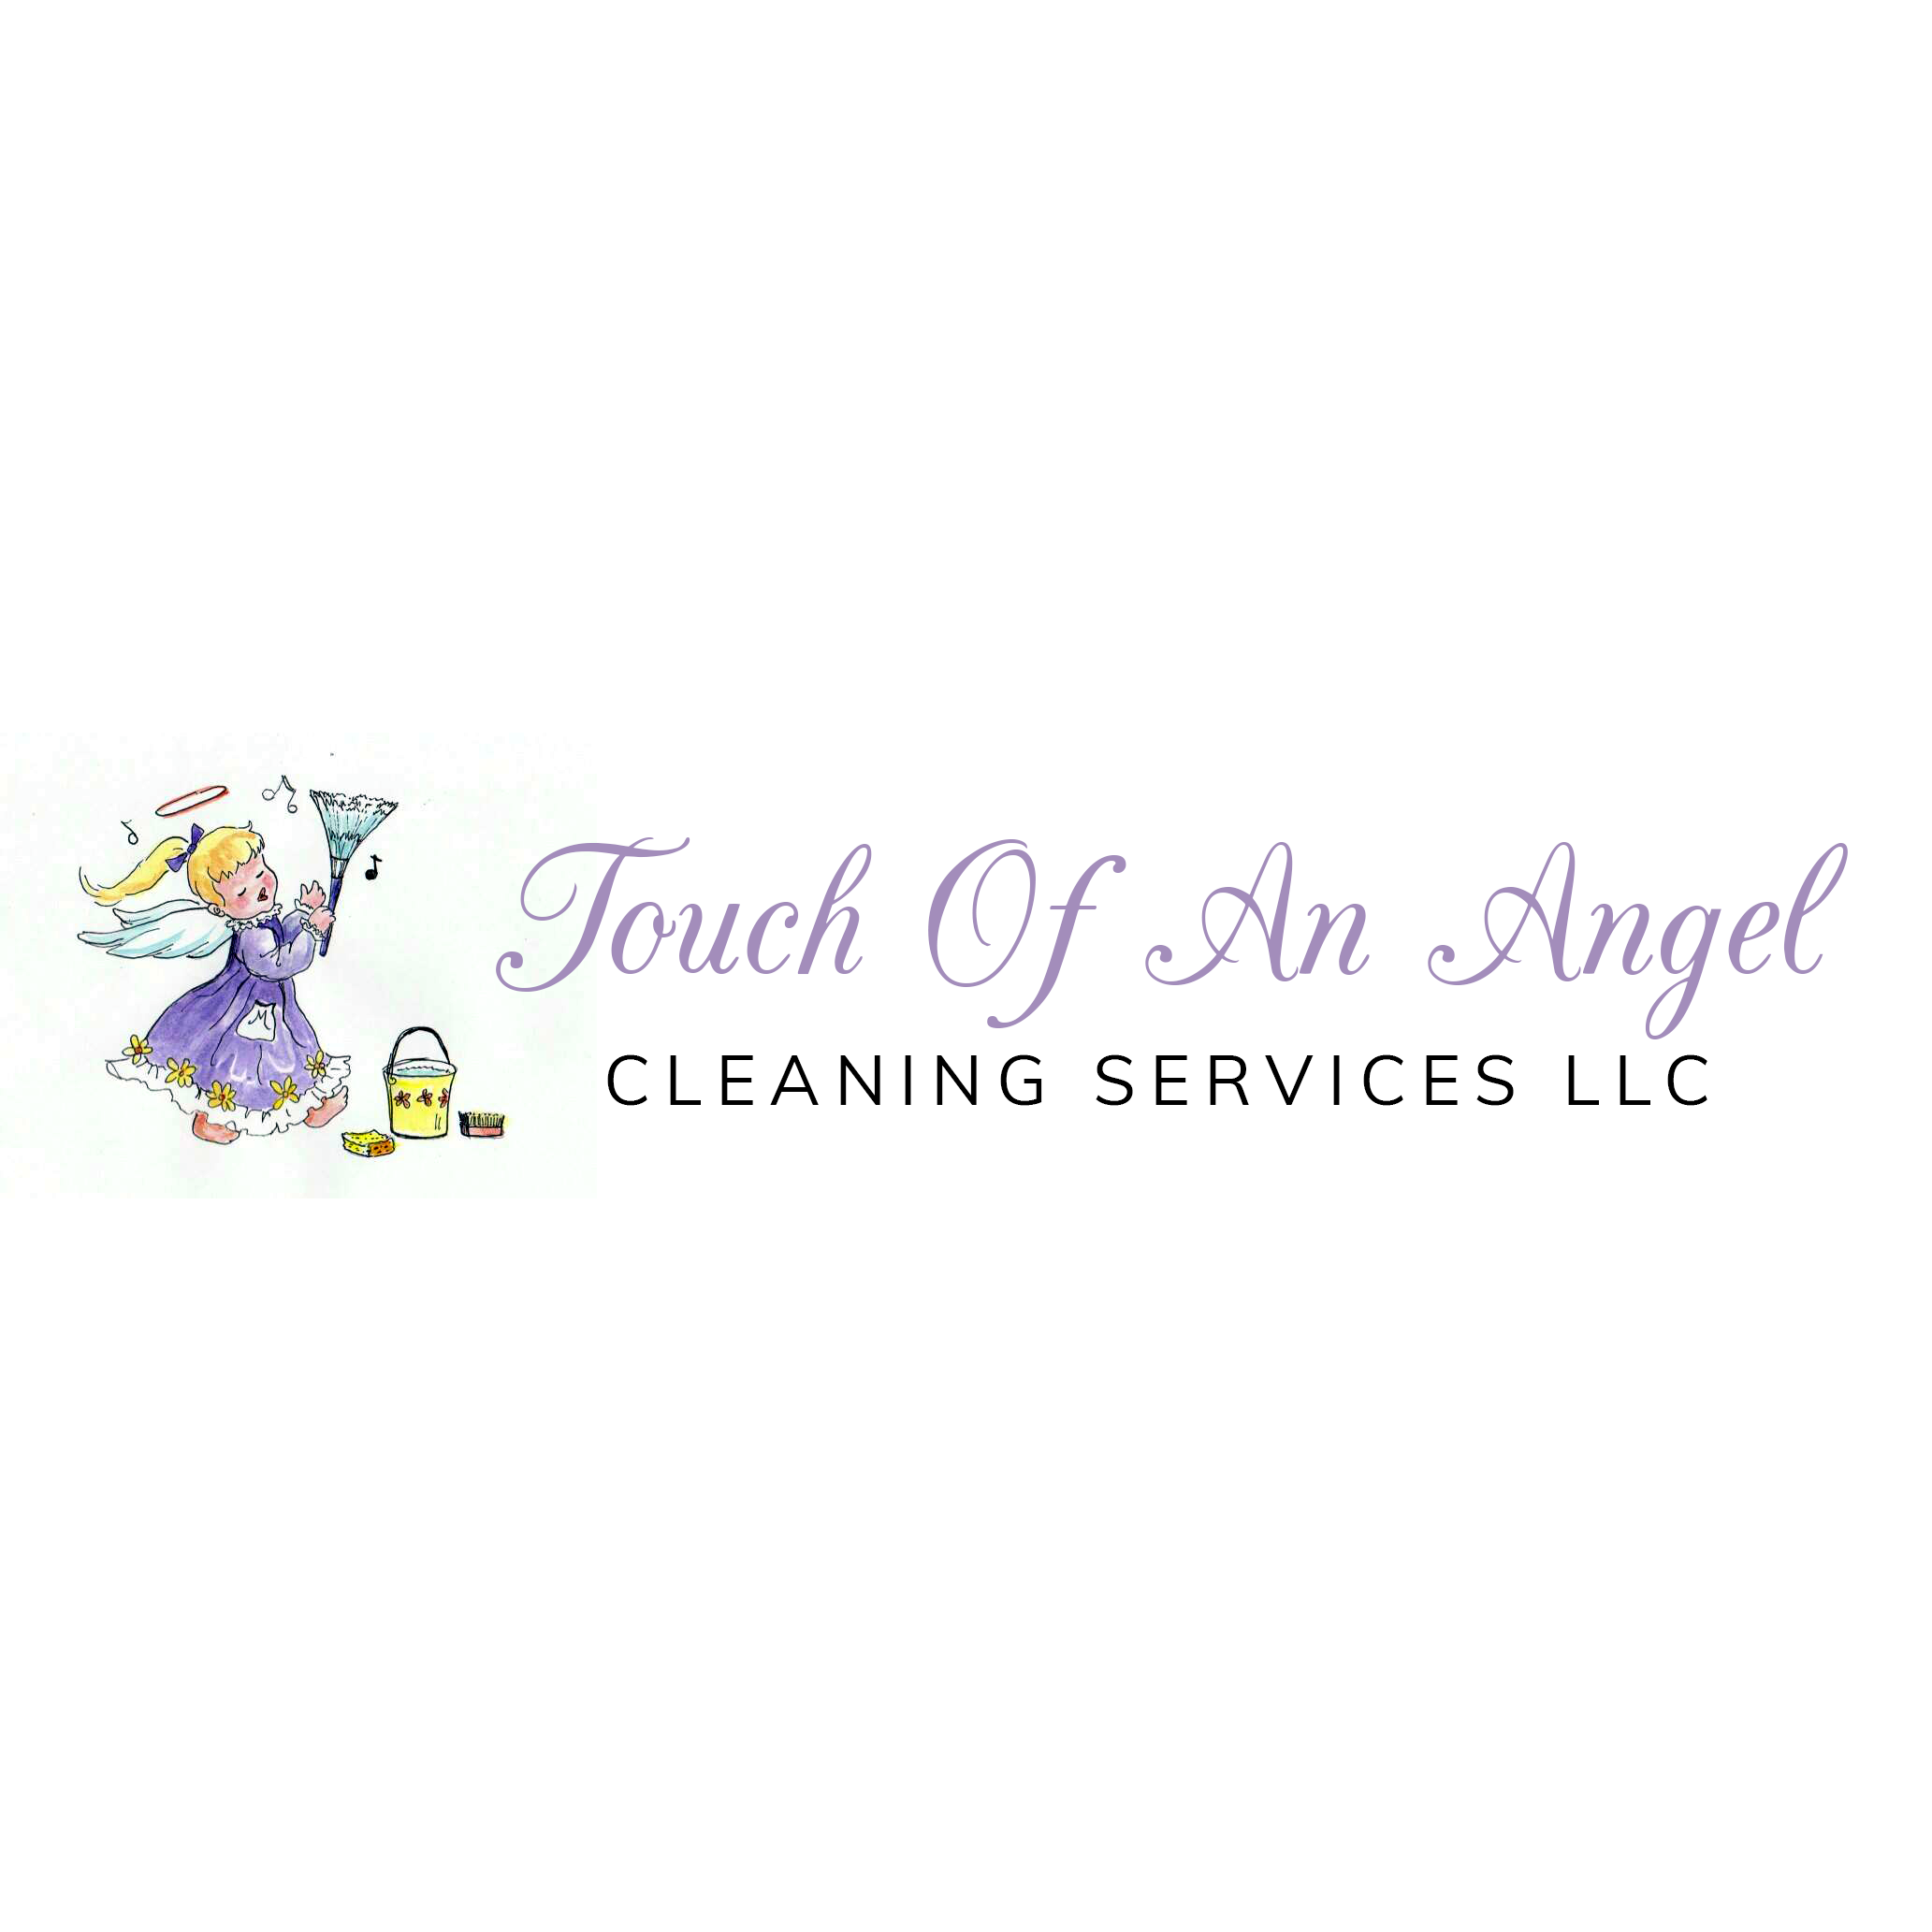 Touch Of An Angel Cleaning Services LLC image 1